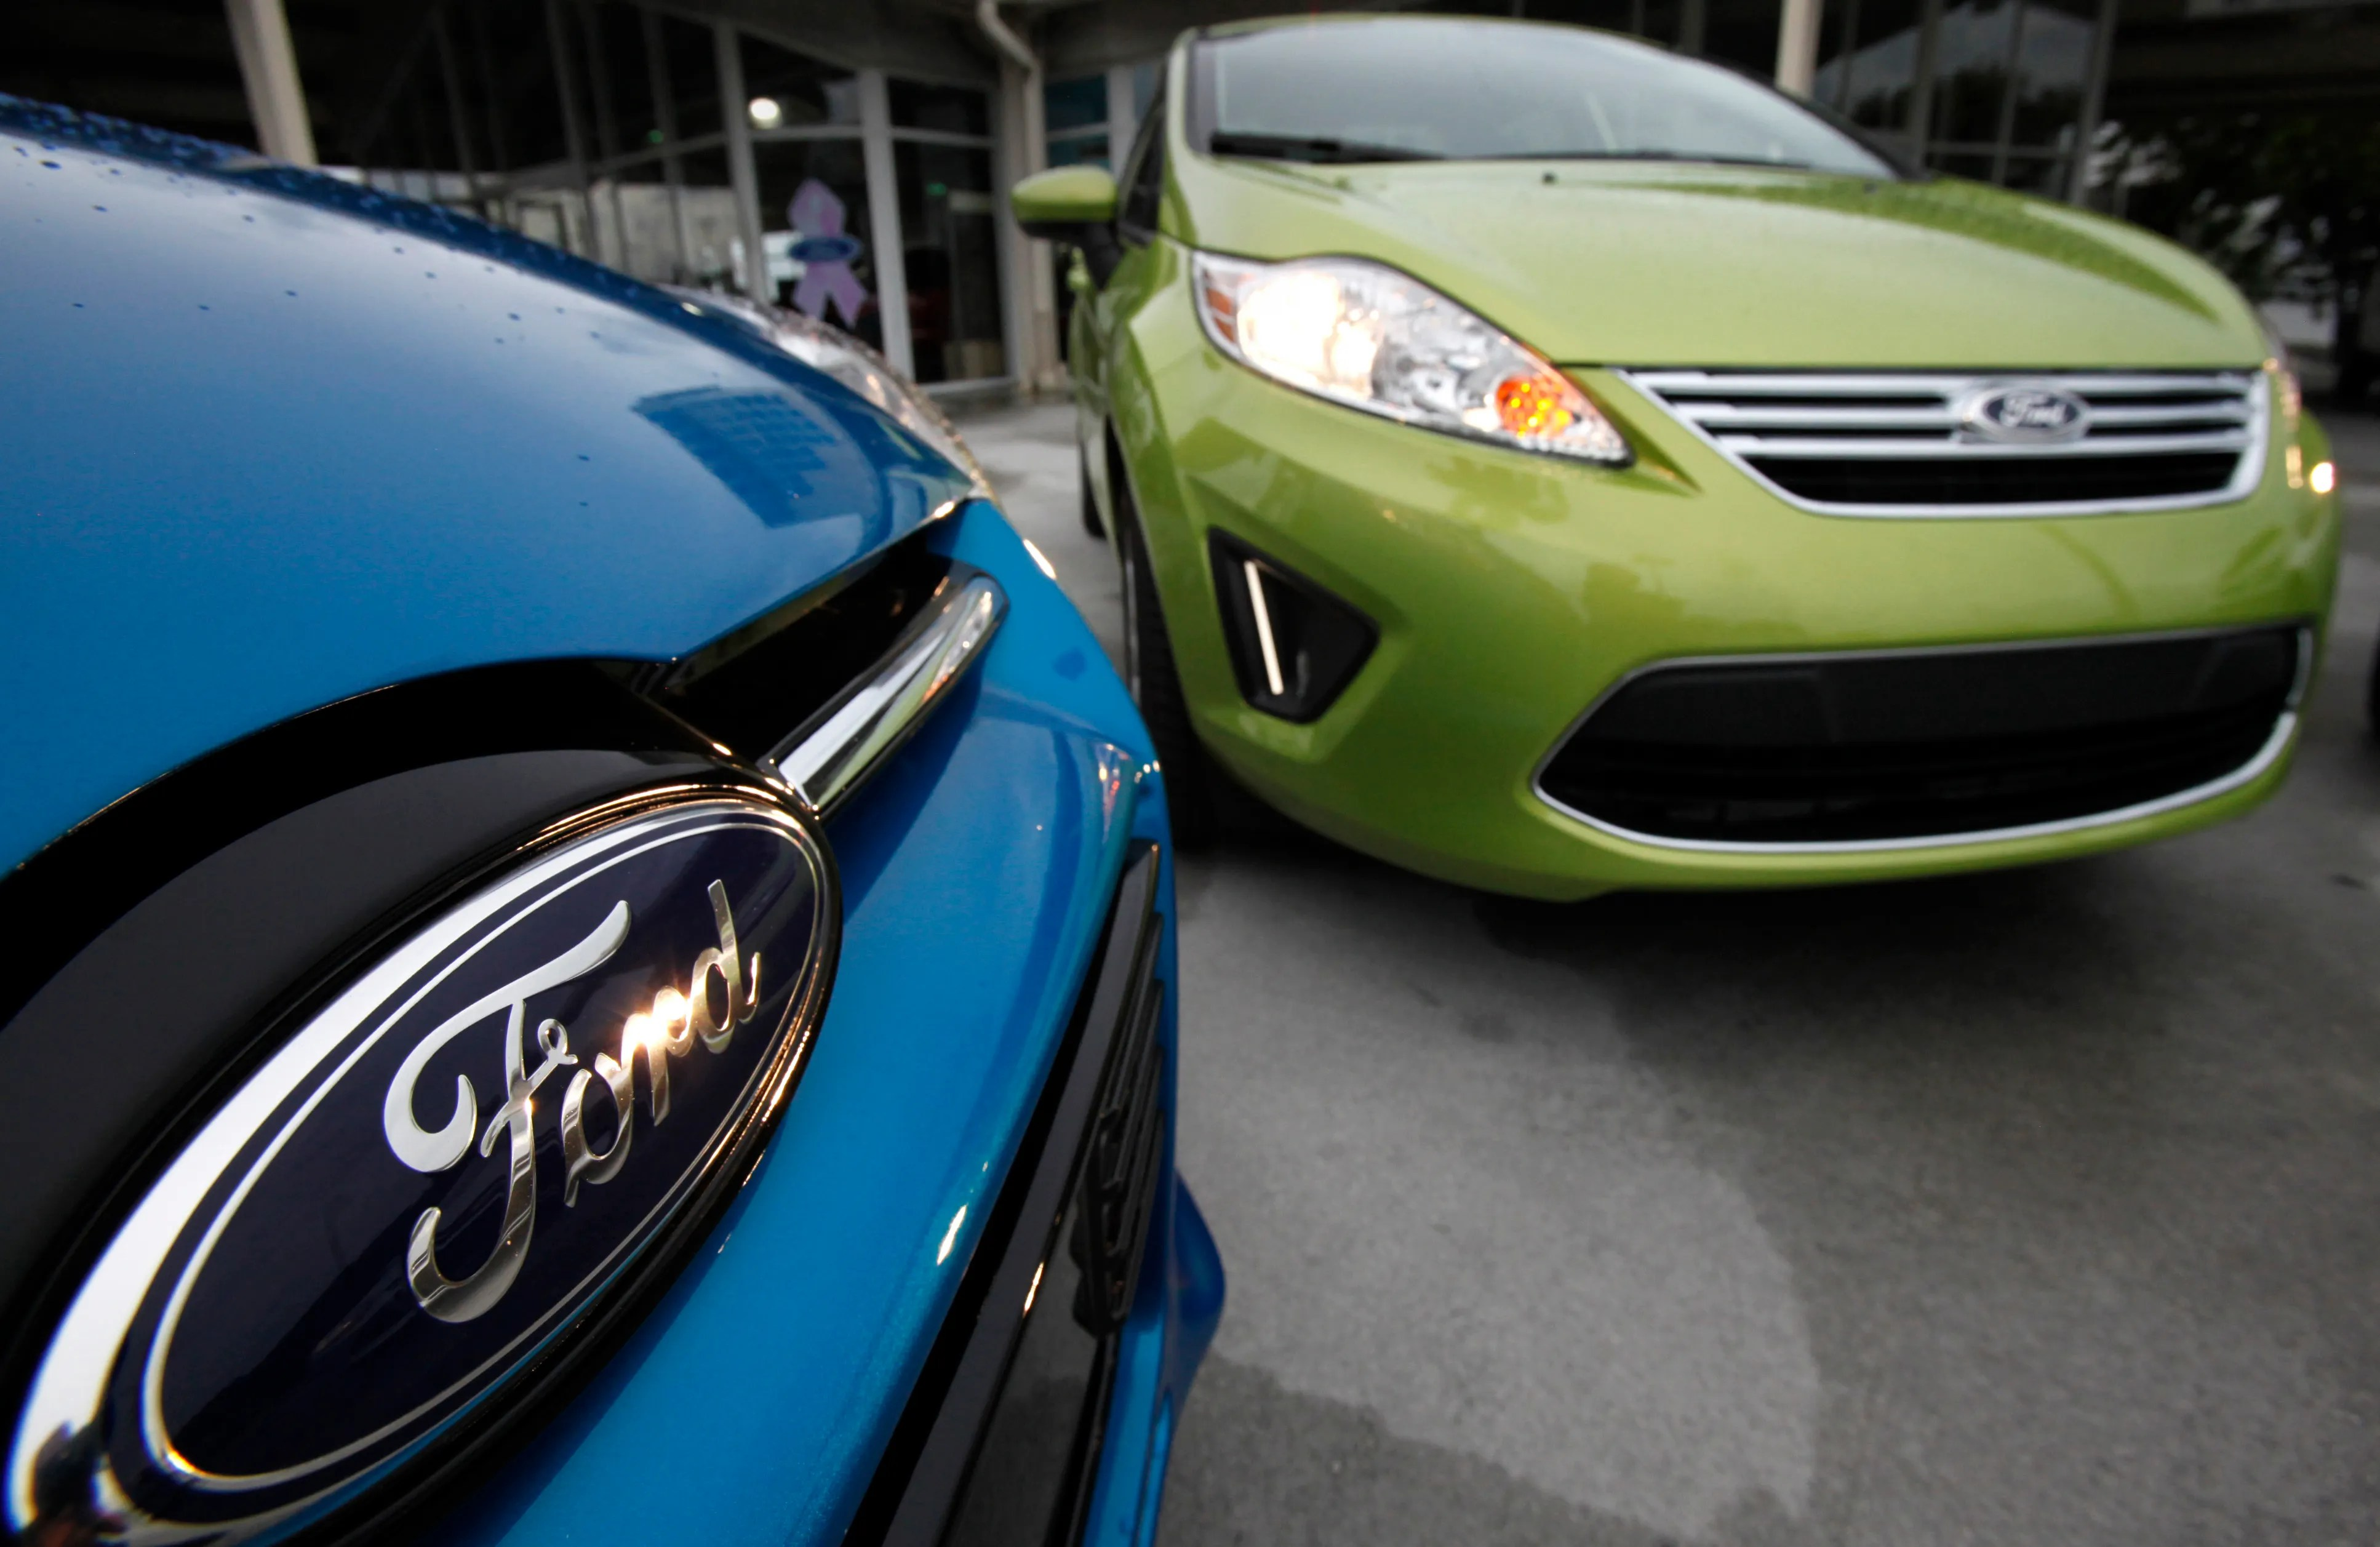 hight resolution of ford knew focus fiesta models had flawed transmission sold them anyway